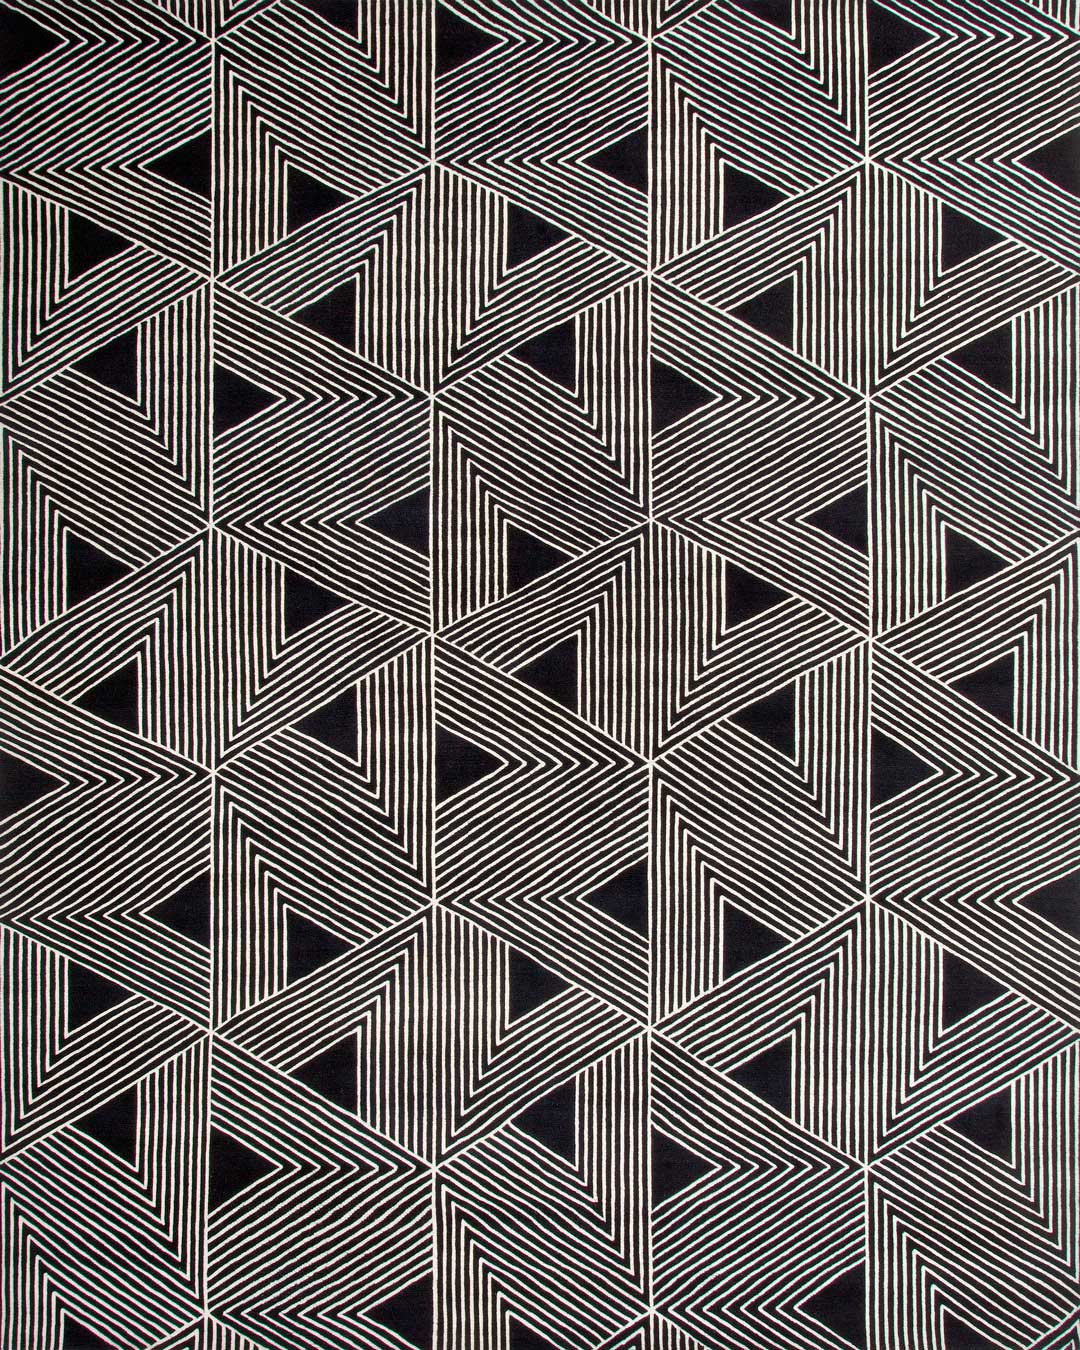 overhead of tokyo rug by greg natale white geometric lines on black background